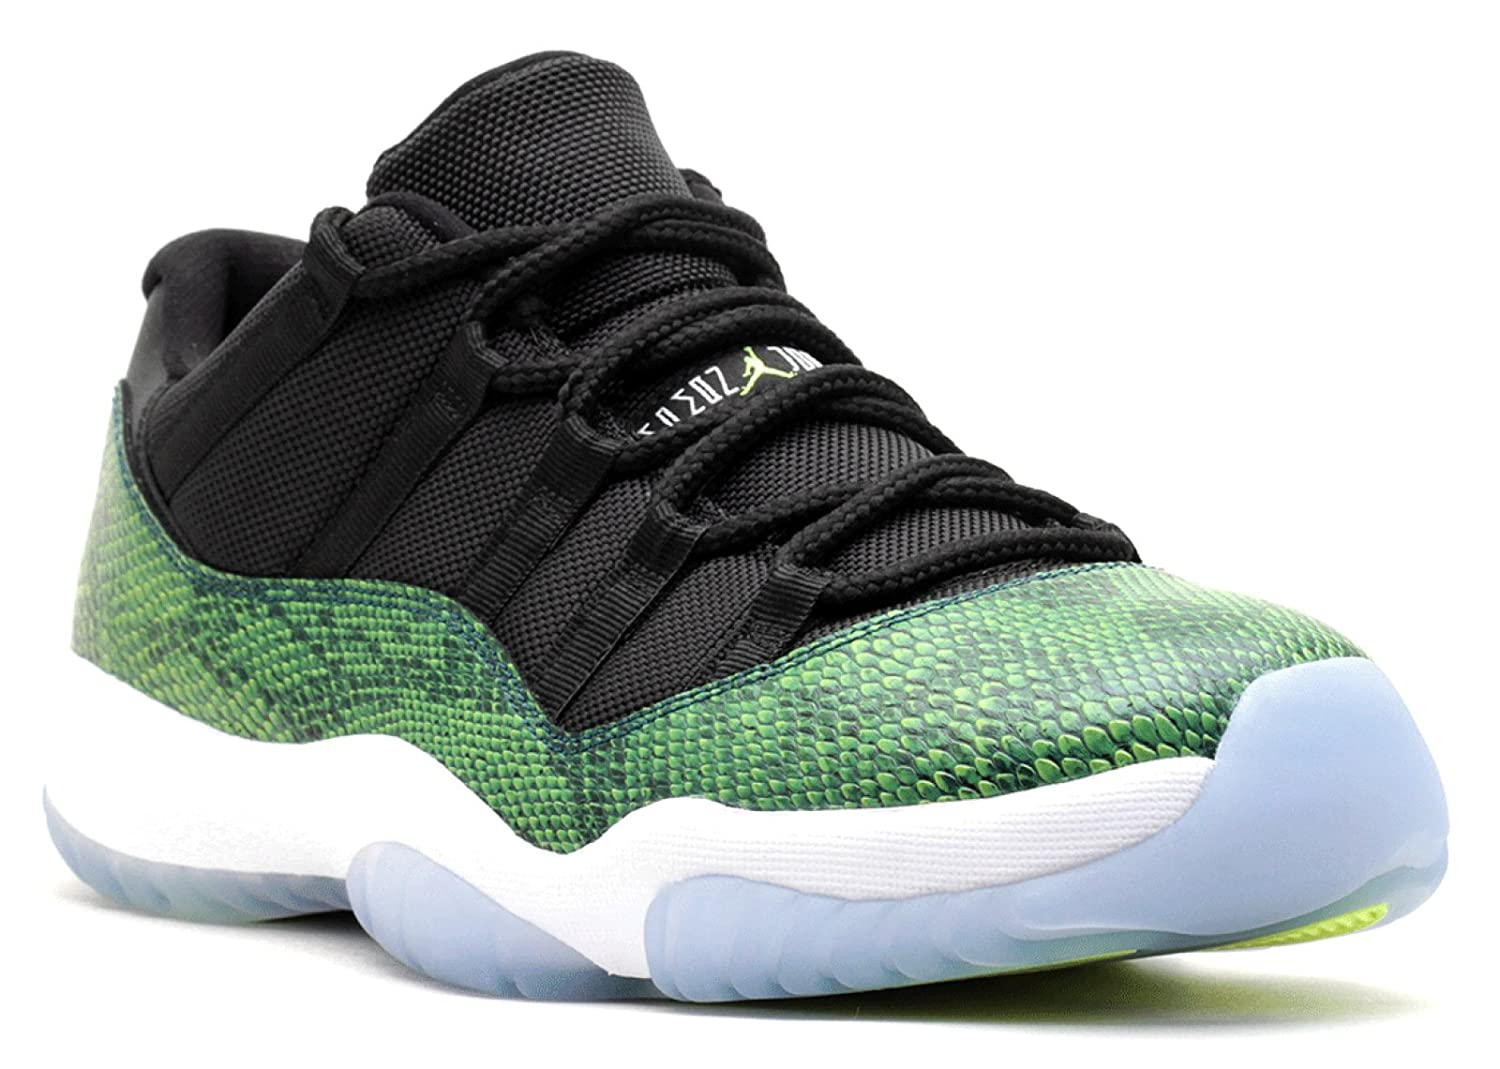 uk availability f1ef5 76907 Jordan 11 Retro Low Men's Shoes Black-Nightshade-White-Volt ice 528895-033